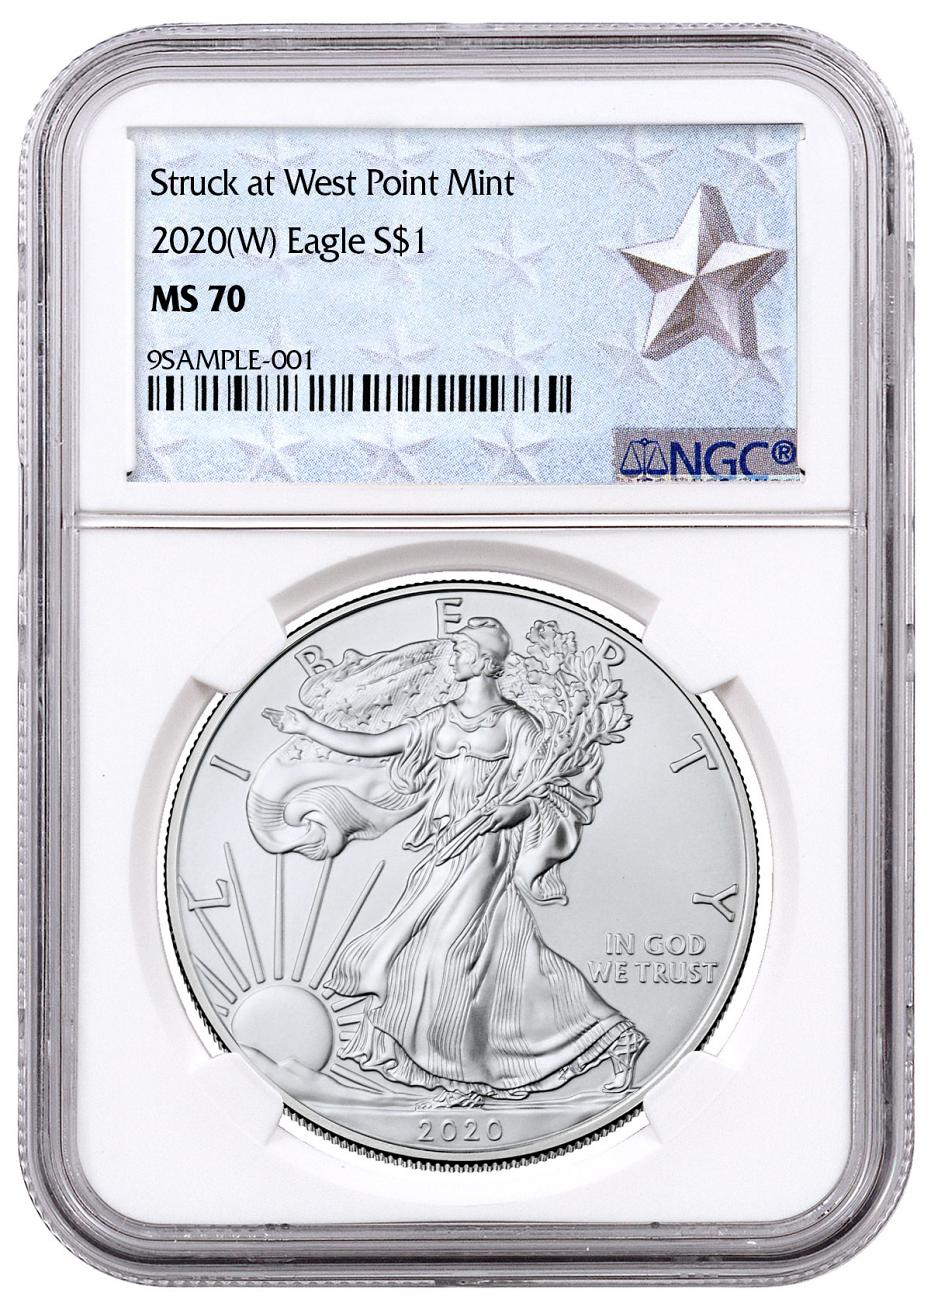 2020-(W) 1 oz Silver American Eagle Struck at West Point Mint NGC MS70 West Point Silver Star Label